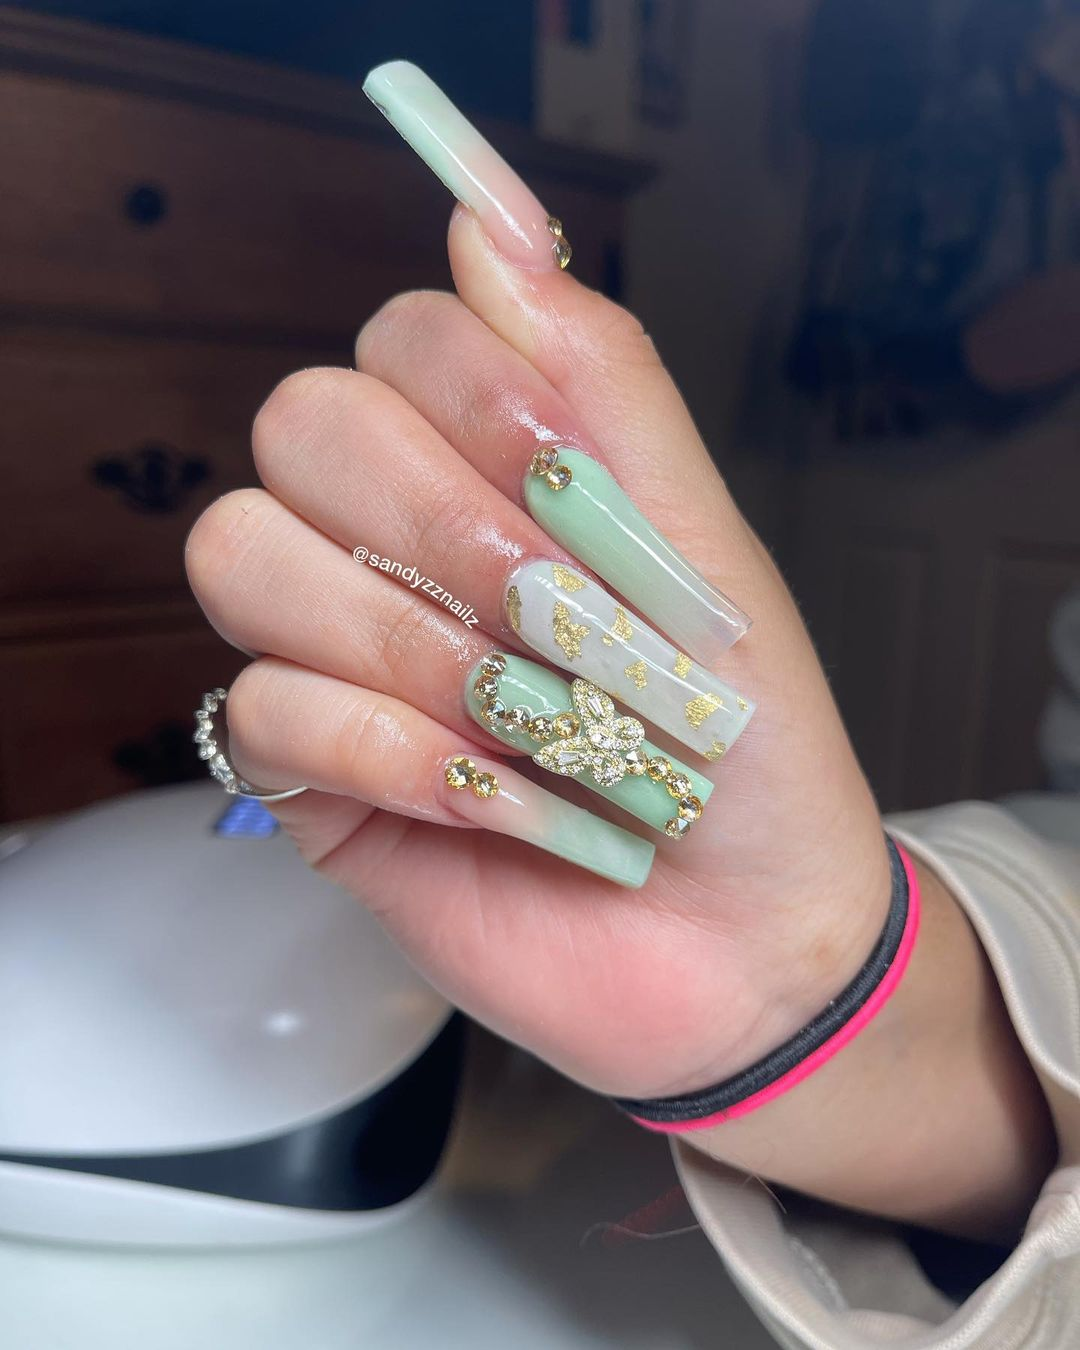 Marble ombre sage green nails with gold decals